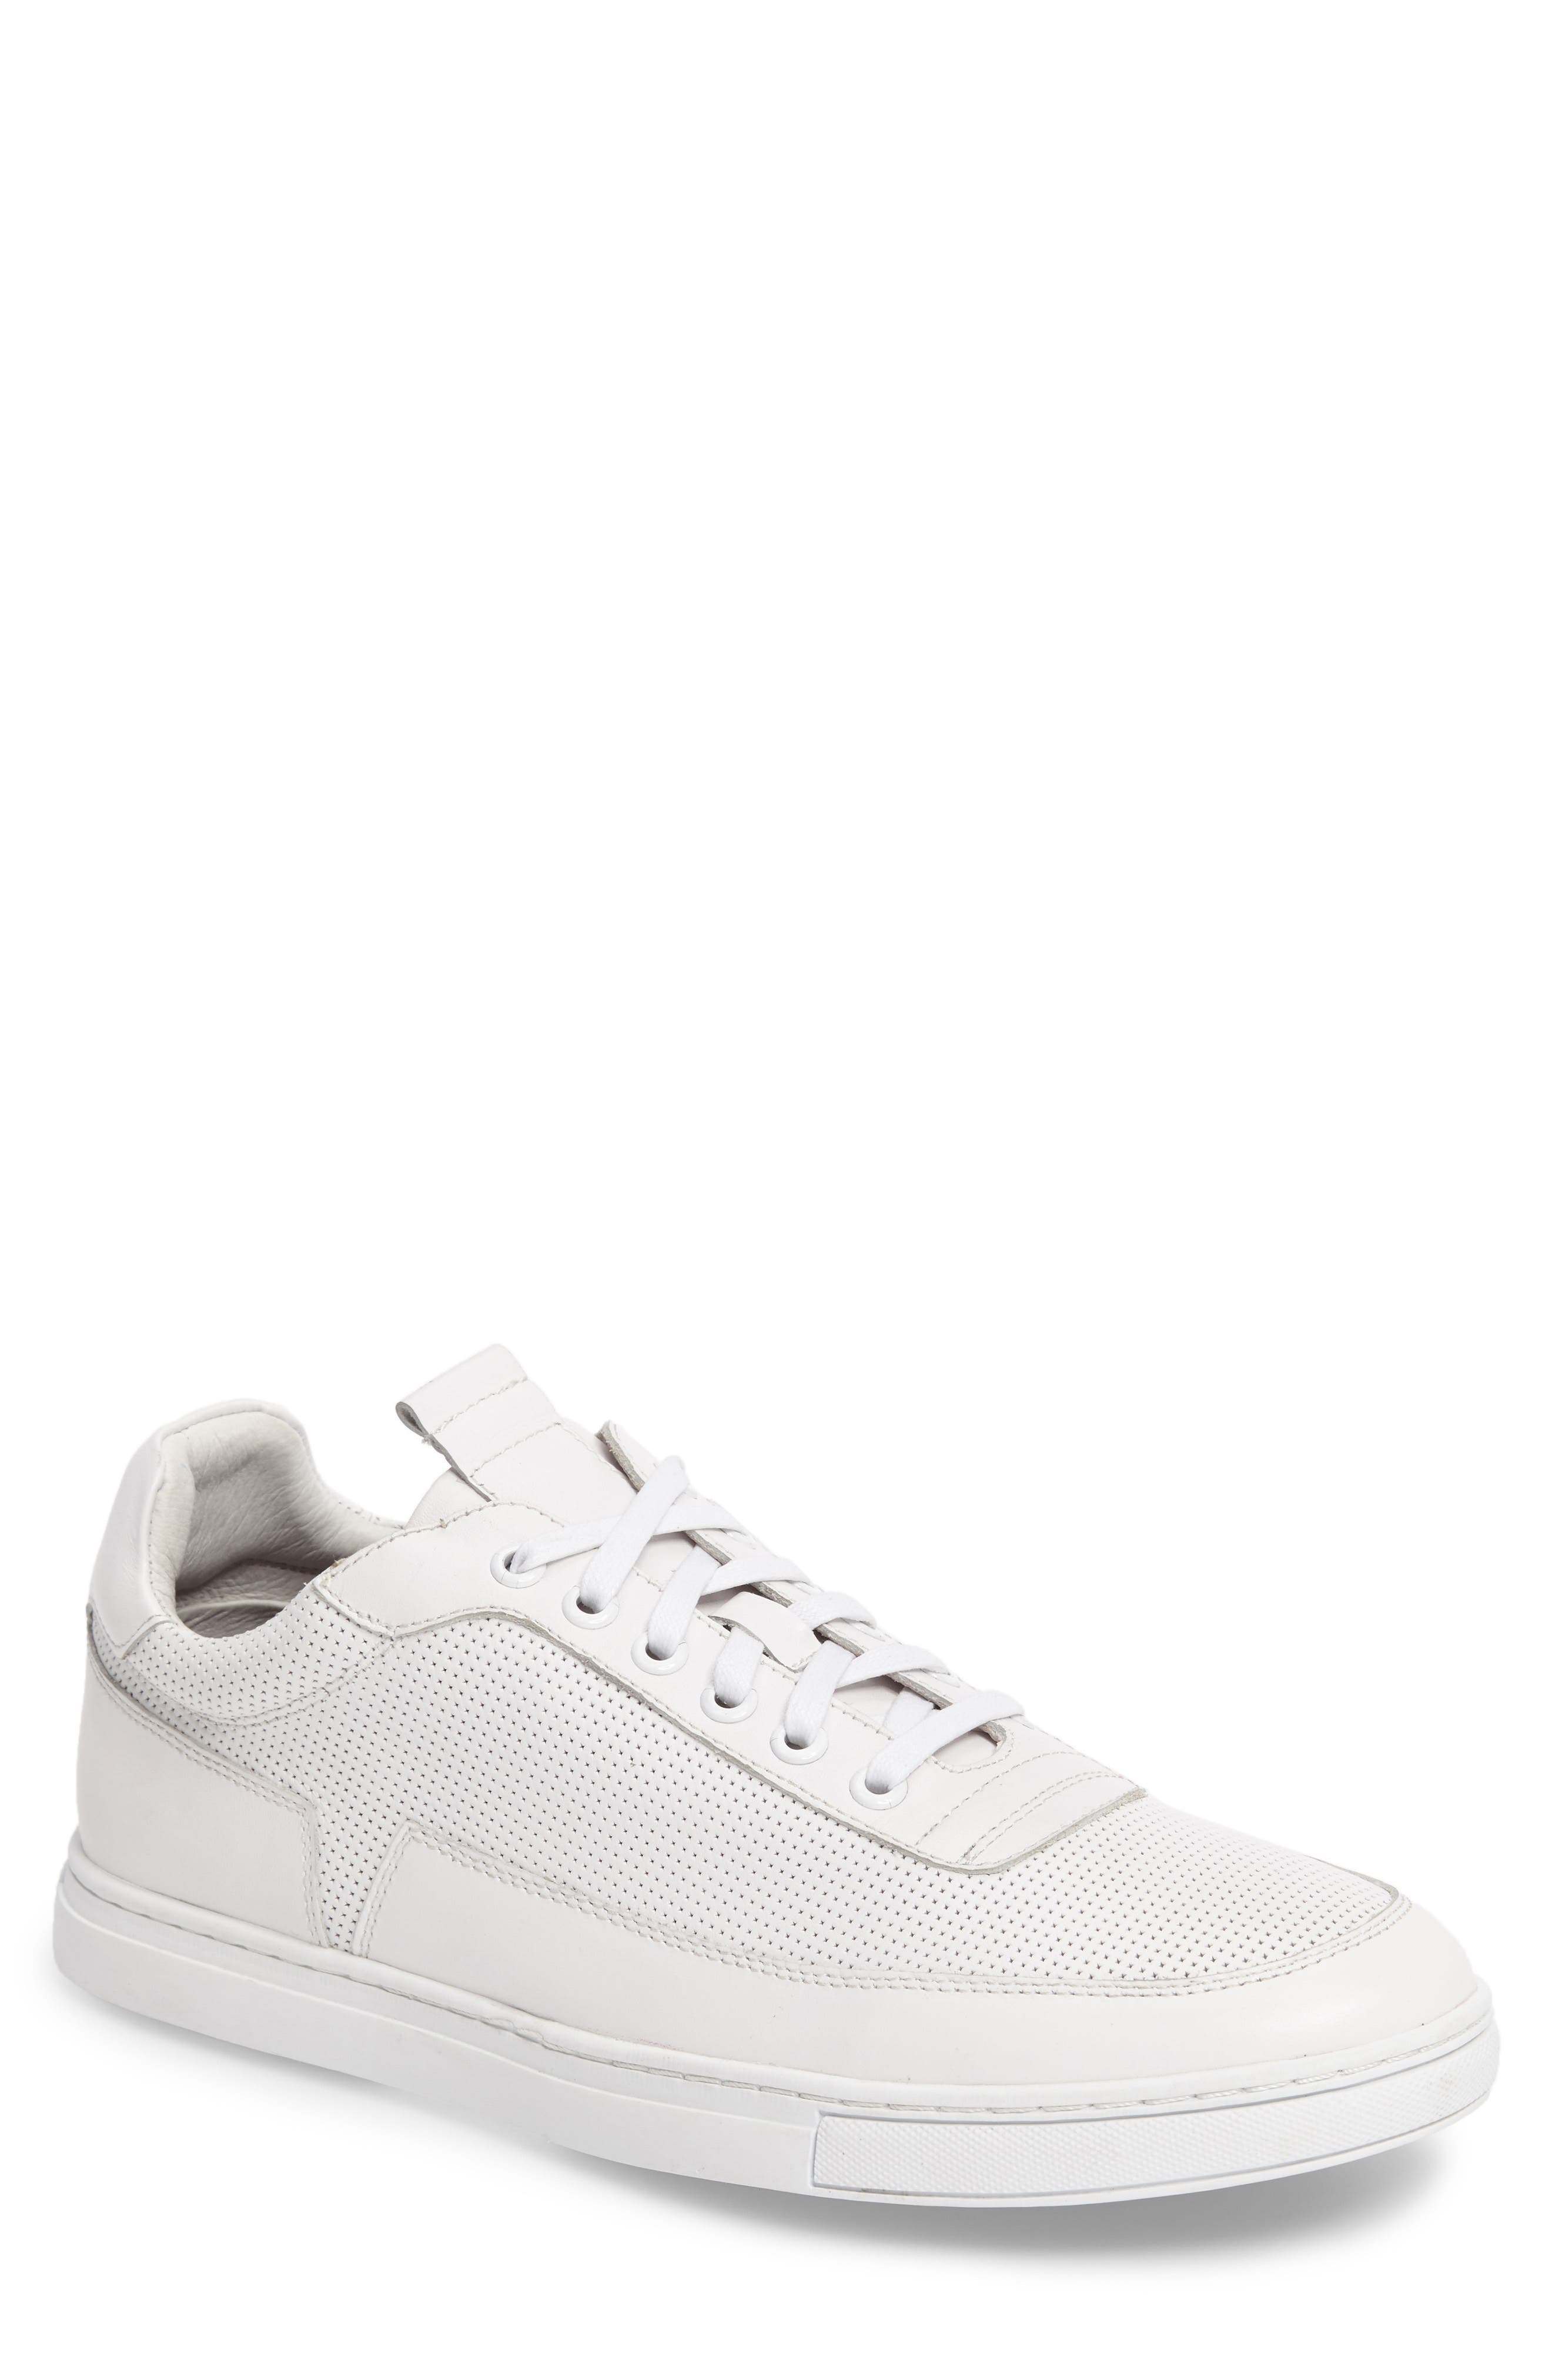 Harmony Sneaker,                             Main thumbnail 1, color,                             WHITE LEATHER